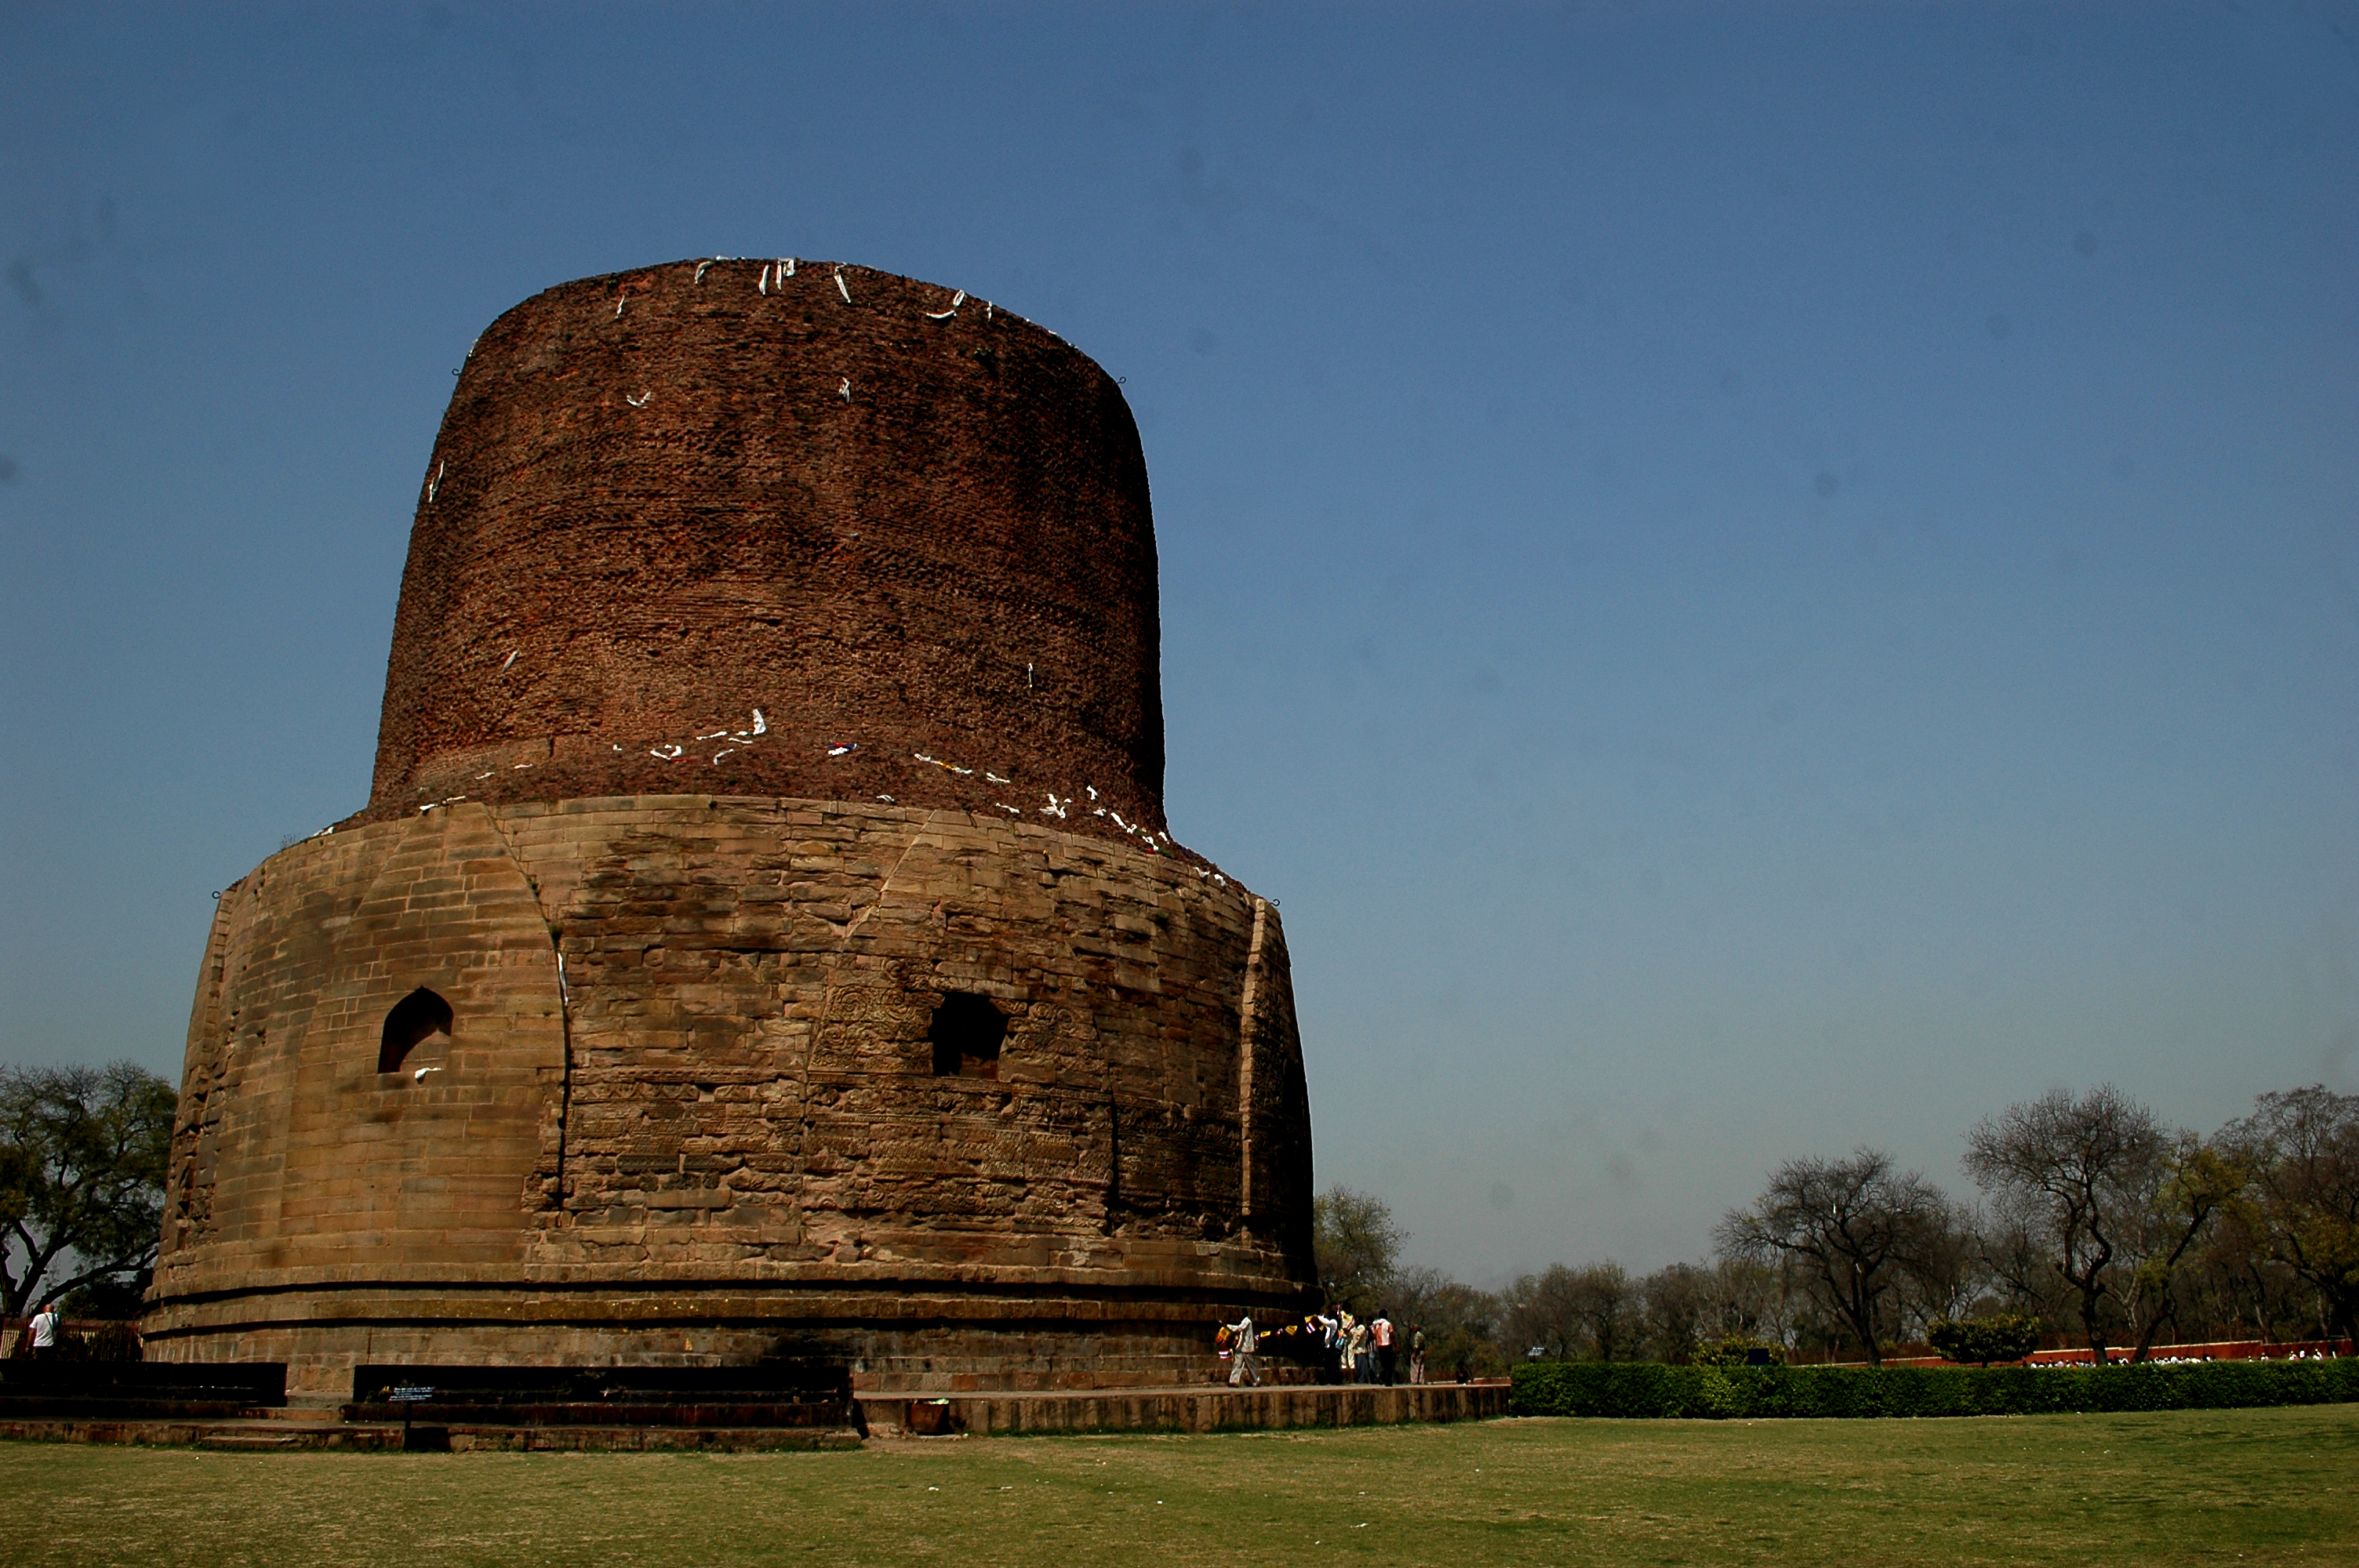 the saranath buddha Description sarnath is situated at a distance of 8 km from varanasi easily accessible by any conveyance there are several monuments at sarnath which are divided.